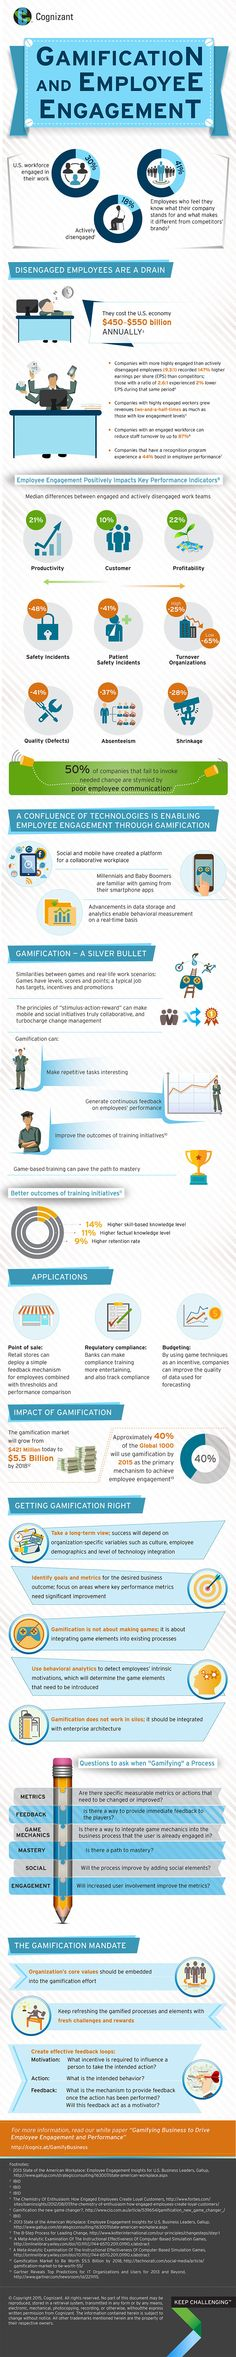 Gamification and Employee Engagement by Cognizant This infographic not only reveals how gamification can help organizations counter employee disengagement, but also offers insights on how to tackle difficult-to-define challenges such as compliance and training. It also illuminates how gamification can ignite enthusiasm for repetitive (but necessary) tasks, gain performance-related feedback and engage in smart hiring.